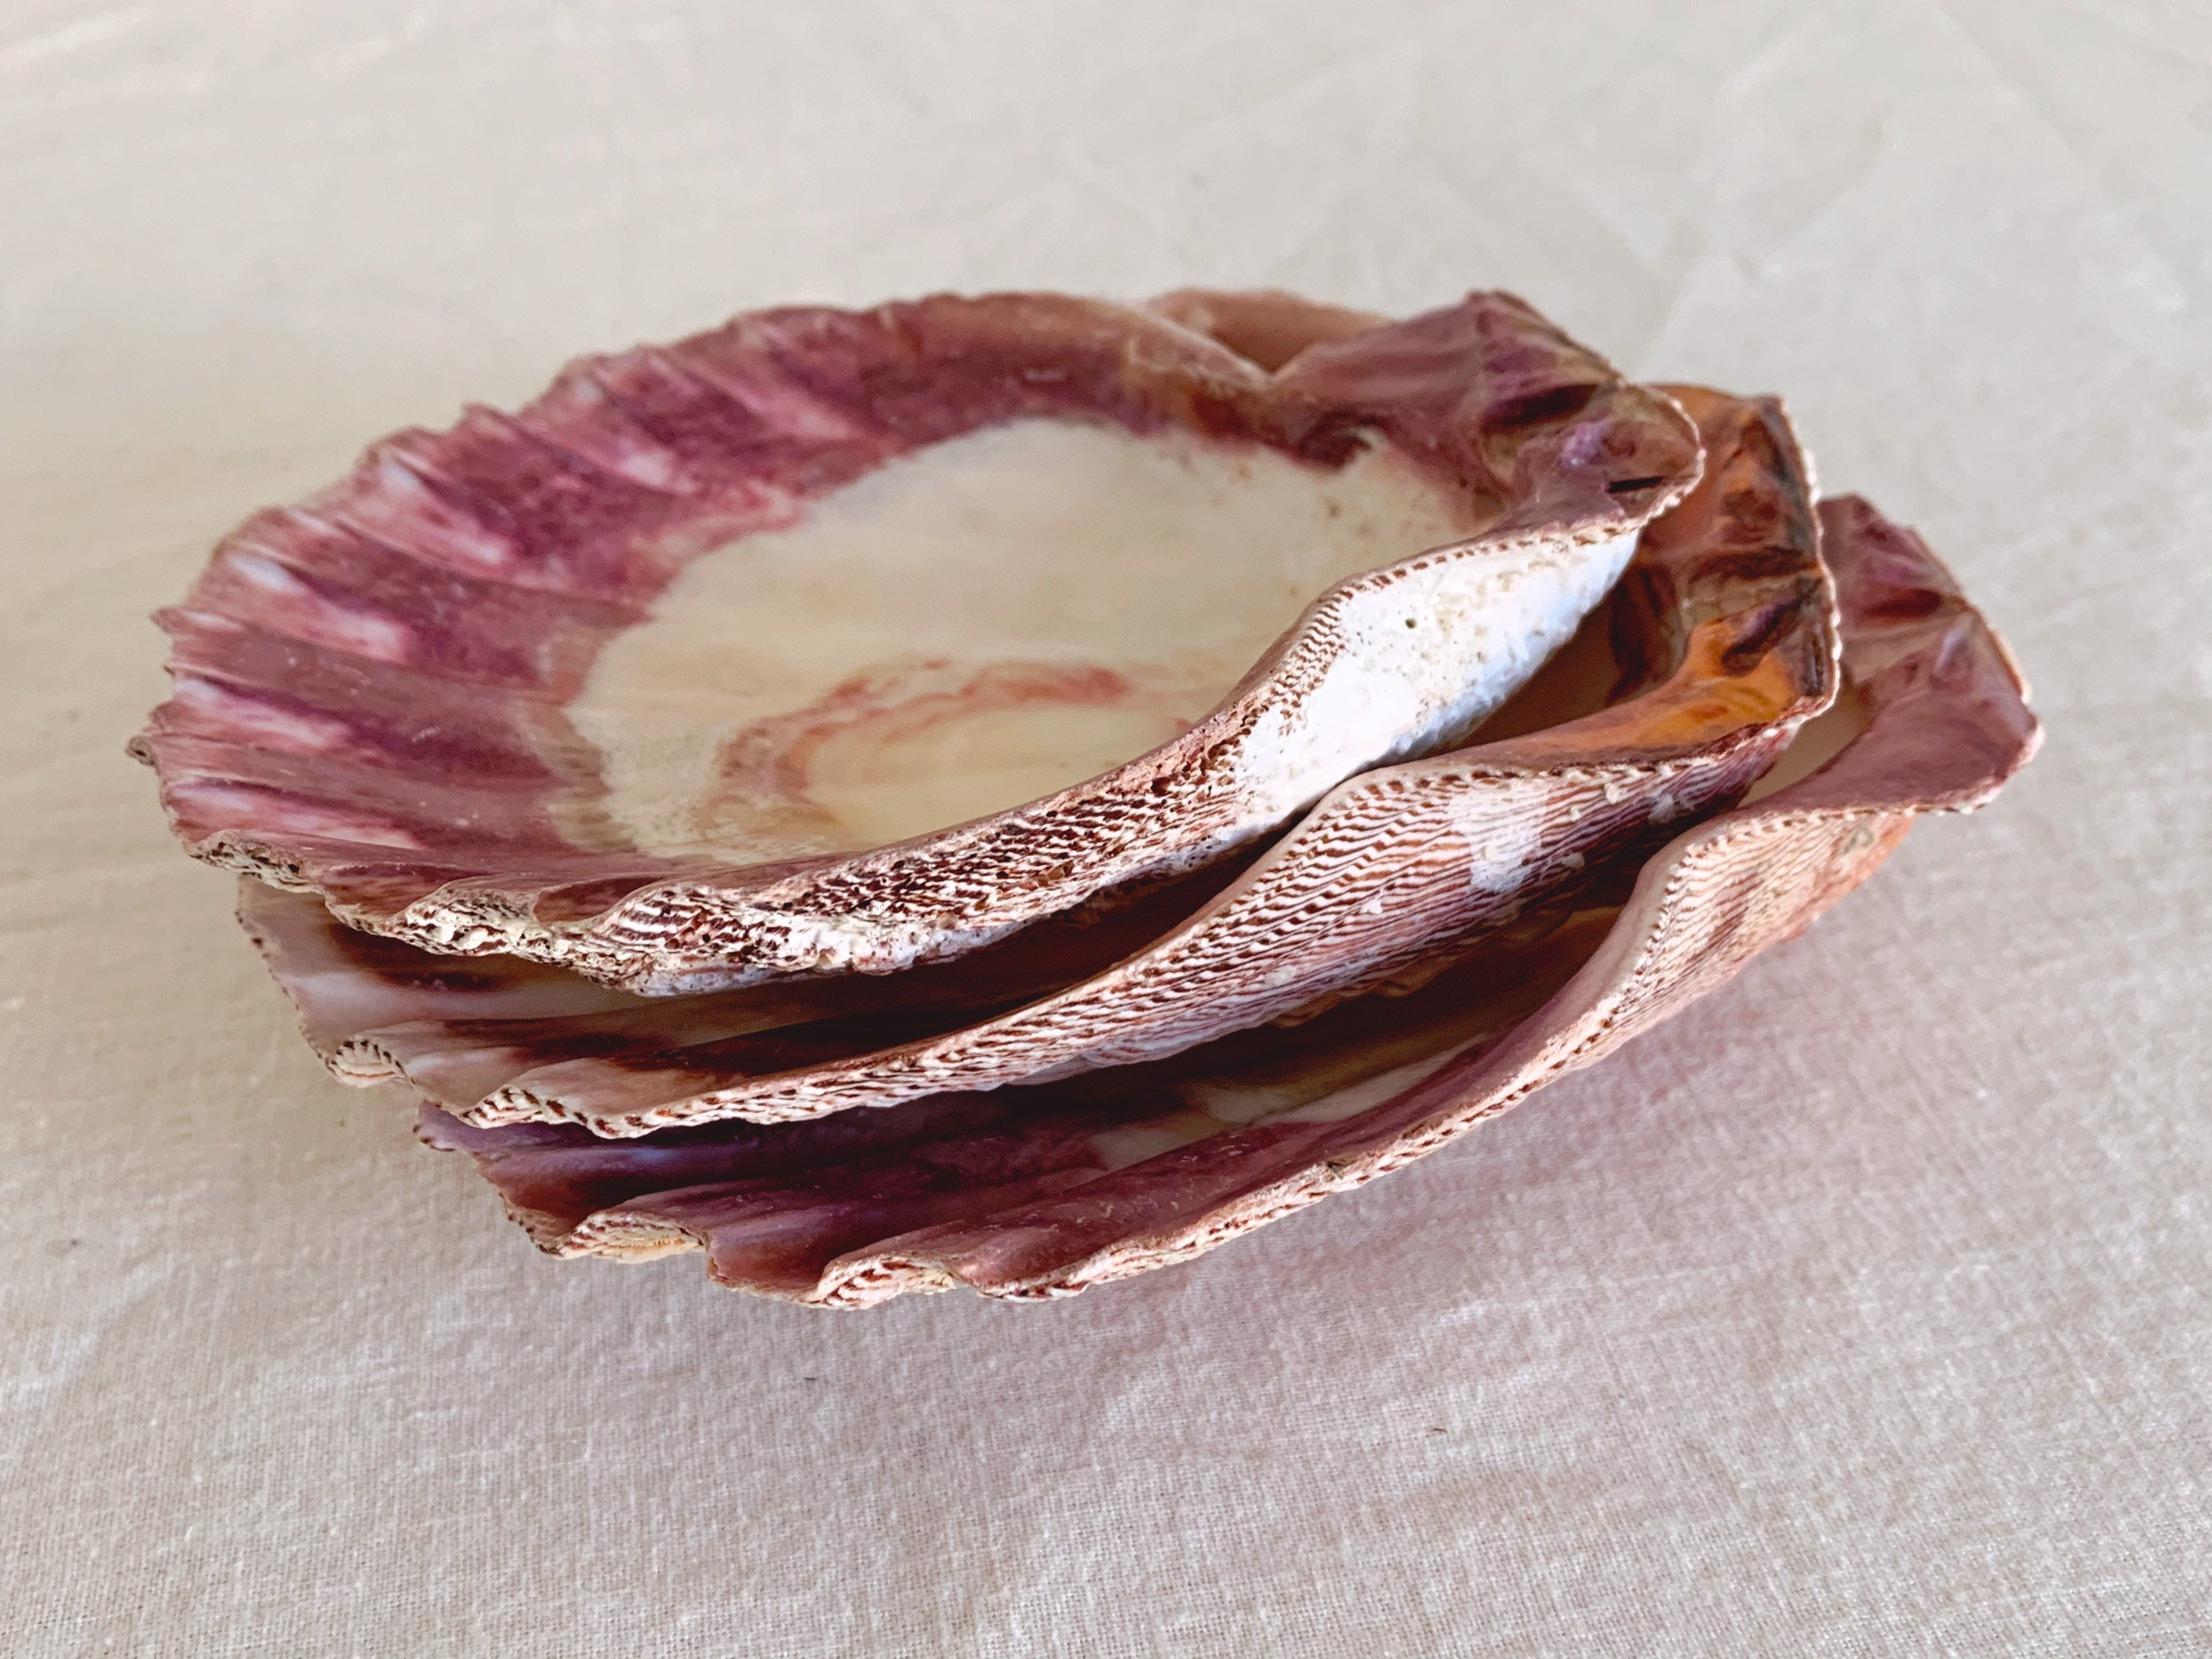 Large Real Lions Paw Shell Plates | Natural King Scallop Grilling Shells | Jewelry Dish